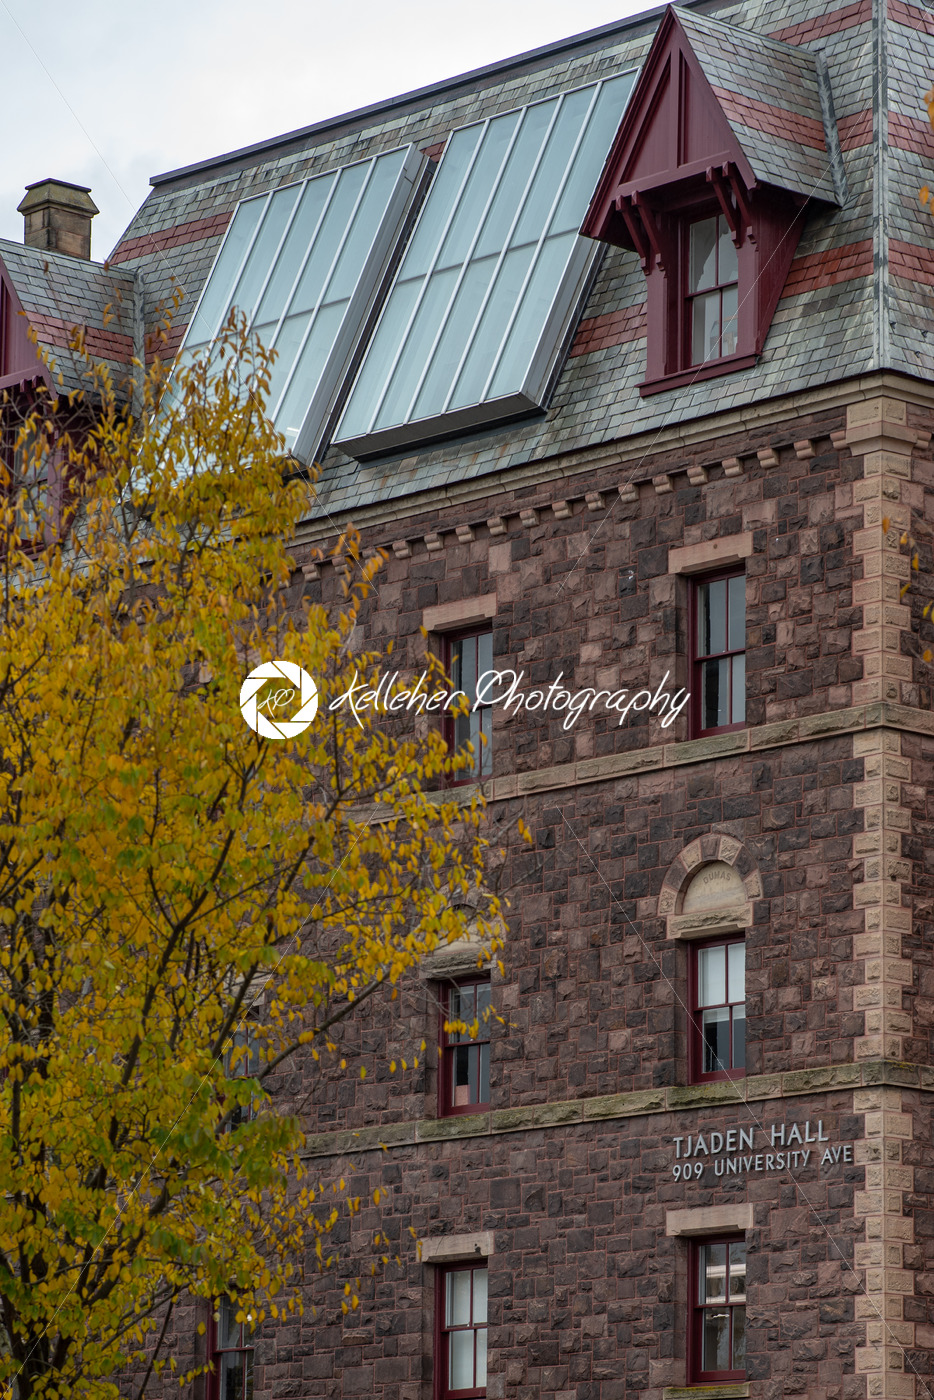 Buildings at Cornell University during peak fall time with autumn colors in Ithaca, New York - Kelleher Photography Store